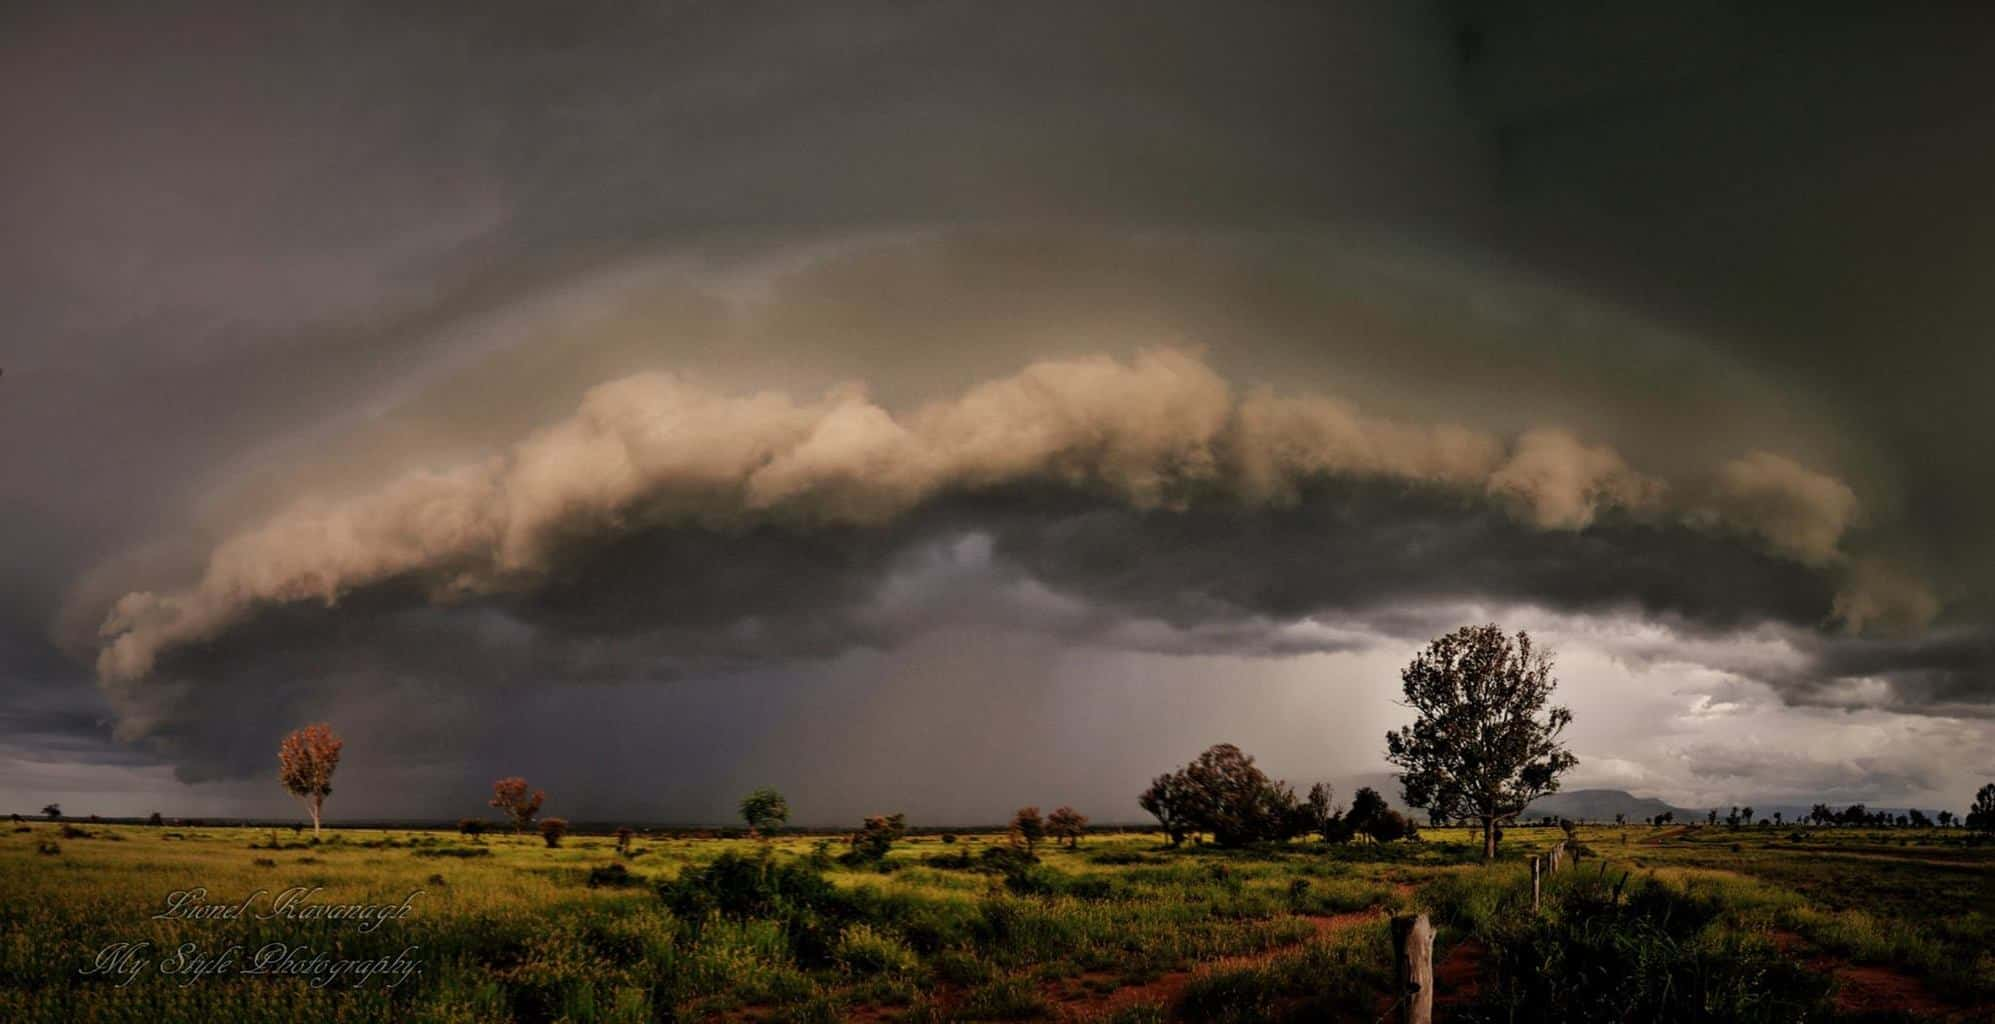 Storm cell rolling in over Tantallon Blackwater Qld. My first Pano stitching 5 images together. This storm was in Jan 2015.